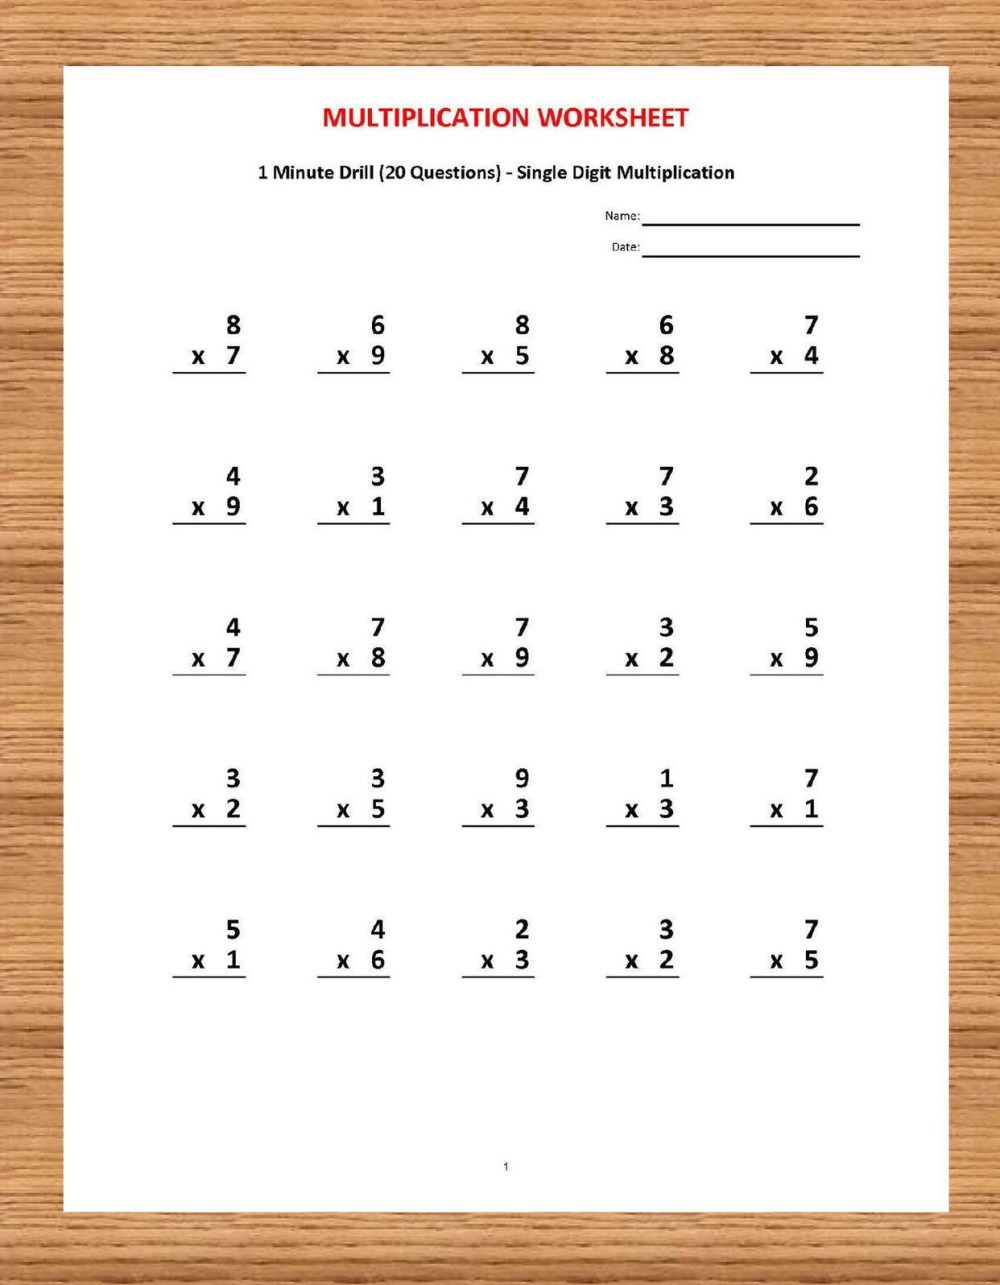 medium resolution of Multiplication Worksheets Sample   Printable Worksheets and Activities for  Teachers